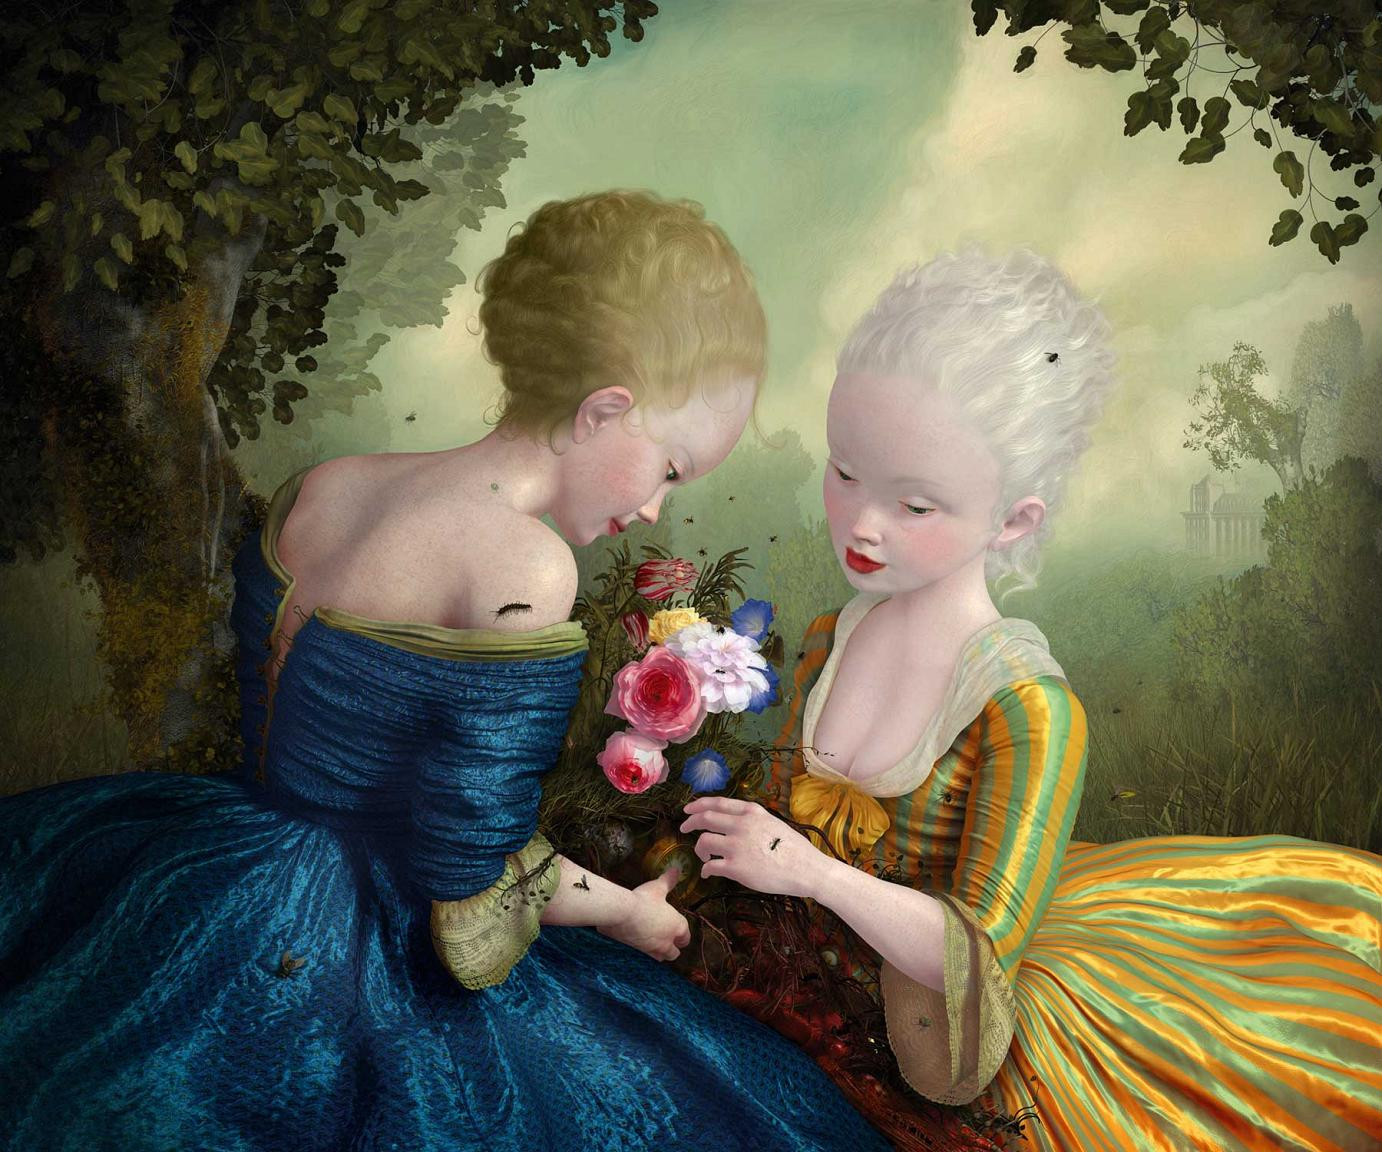 From Such Foulness of Root Does Sweetness Grow • 2009 • digital, Tintenstrahldruck (gefirnist) auf Holztafel · 50,8 x 63,5 cm von Ray Caesar